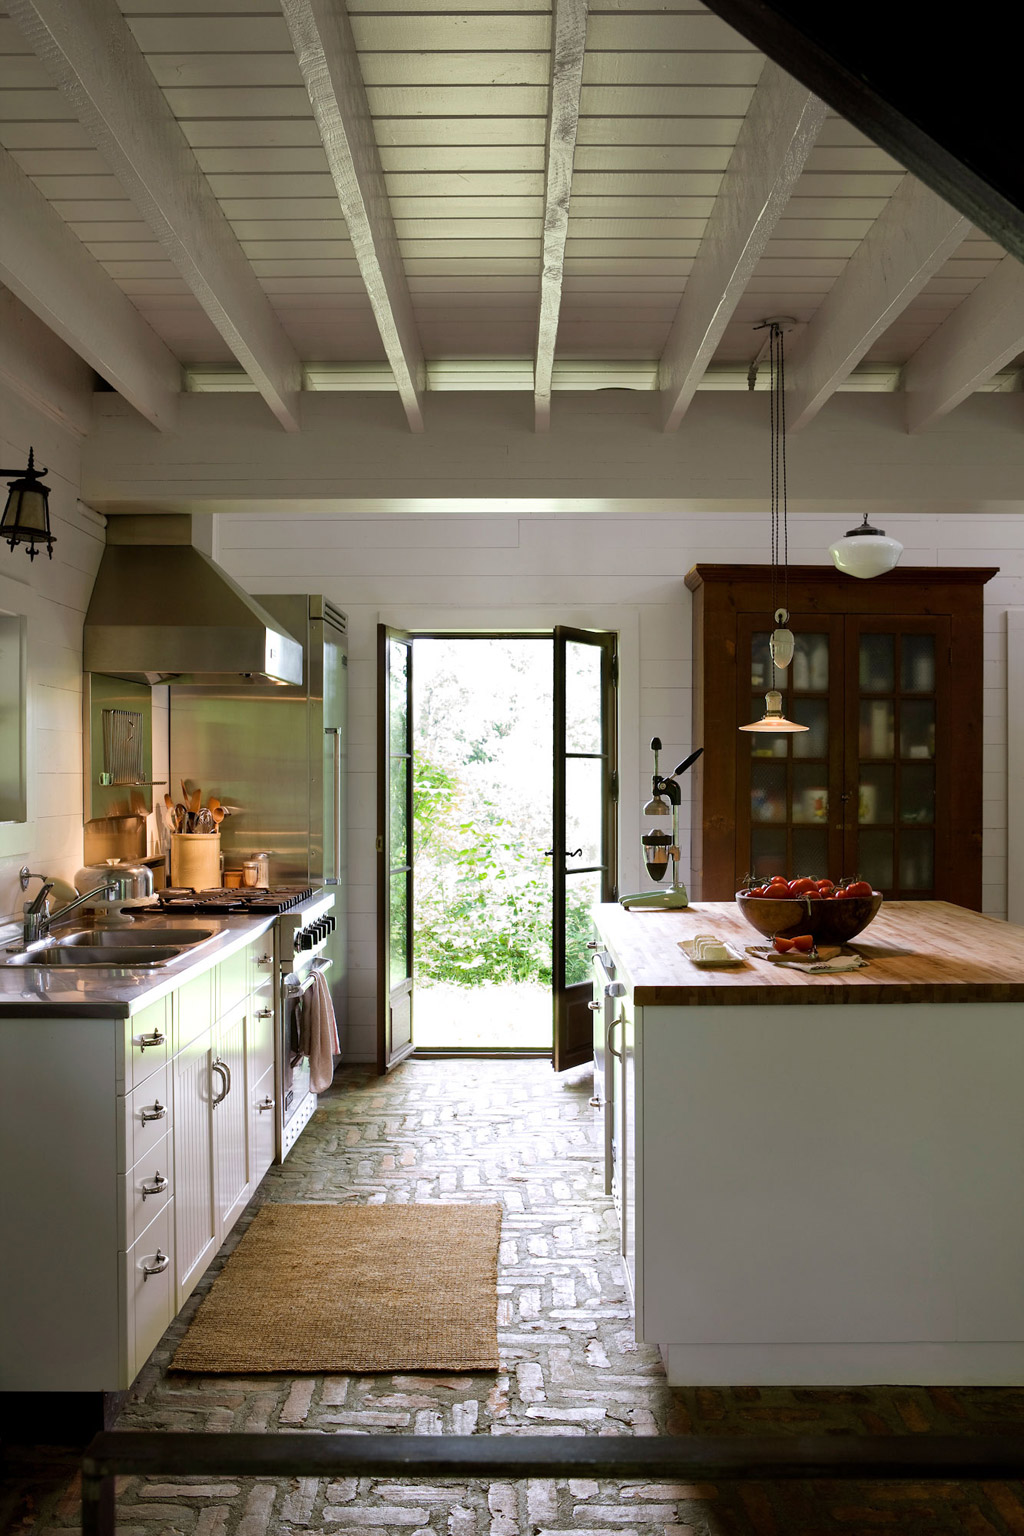 brick floor in the ktichen, white cabinet, white island, wooden top, white wooden ceiling and beams